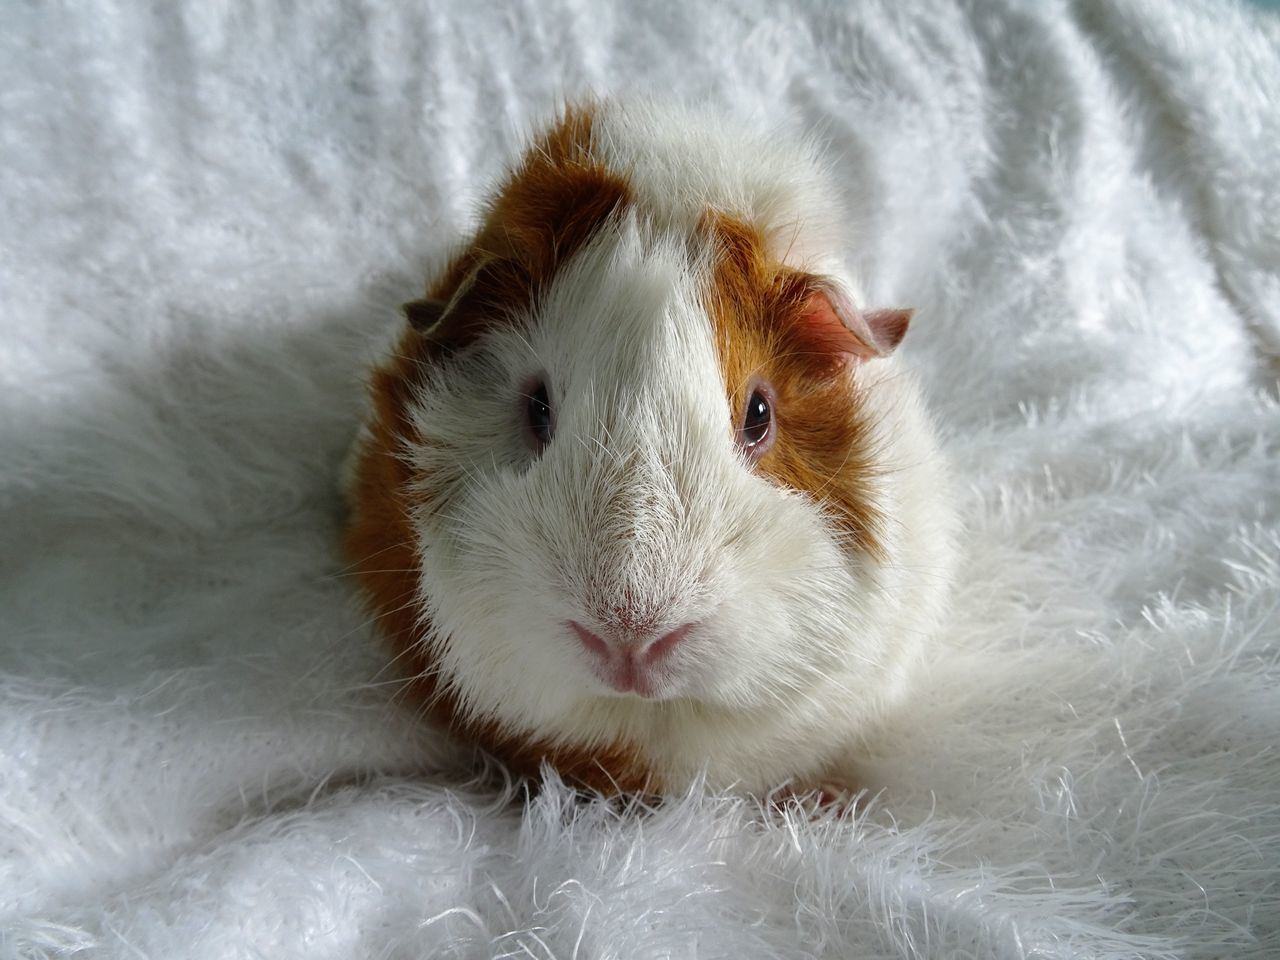 Beautiful stock photos of guinea-pigs, Rodent, animal Head, animal Nose, animal Themes